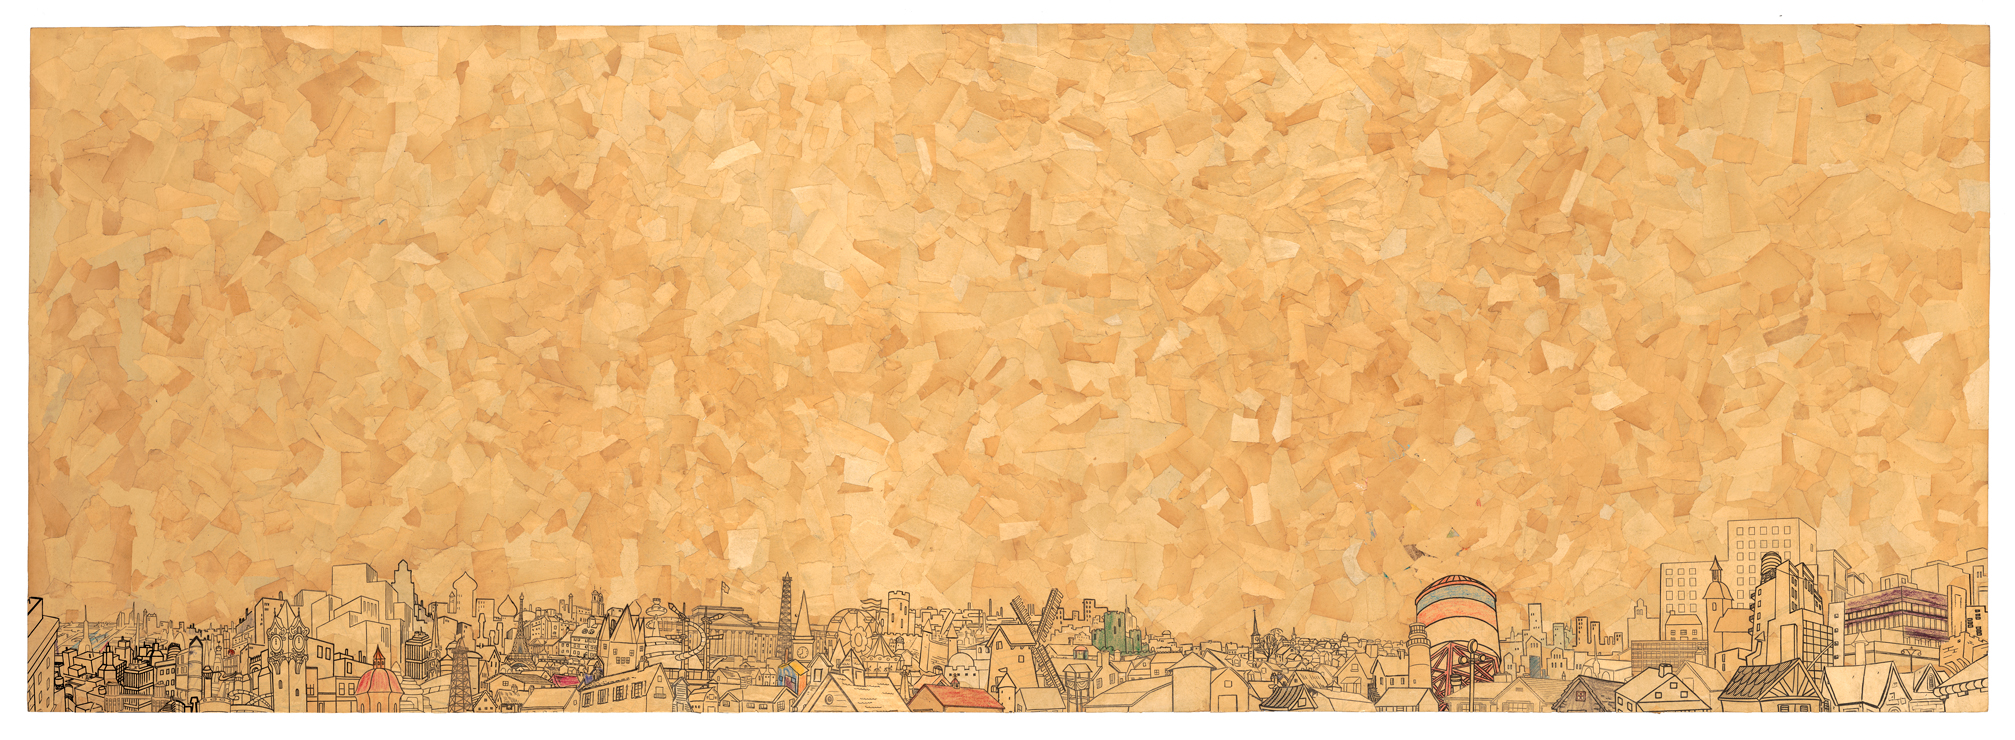 "Los Angeles, coloring book collage on panel, 25"" x 70"", 2010"